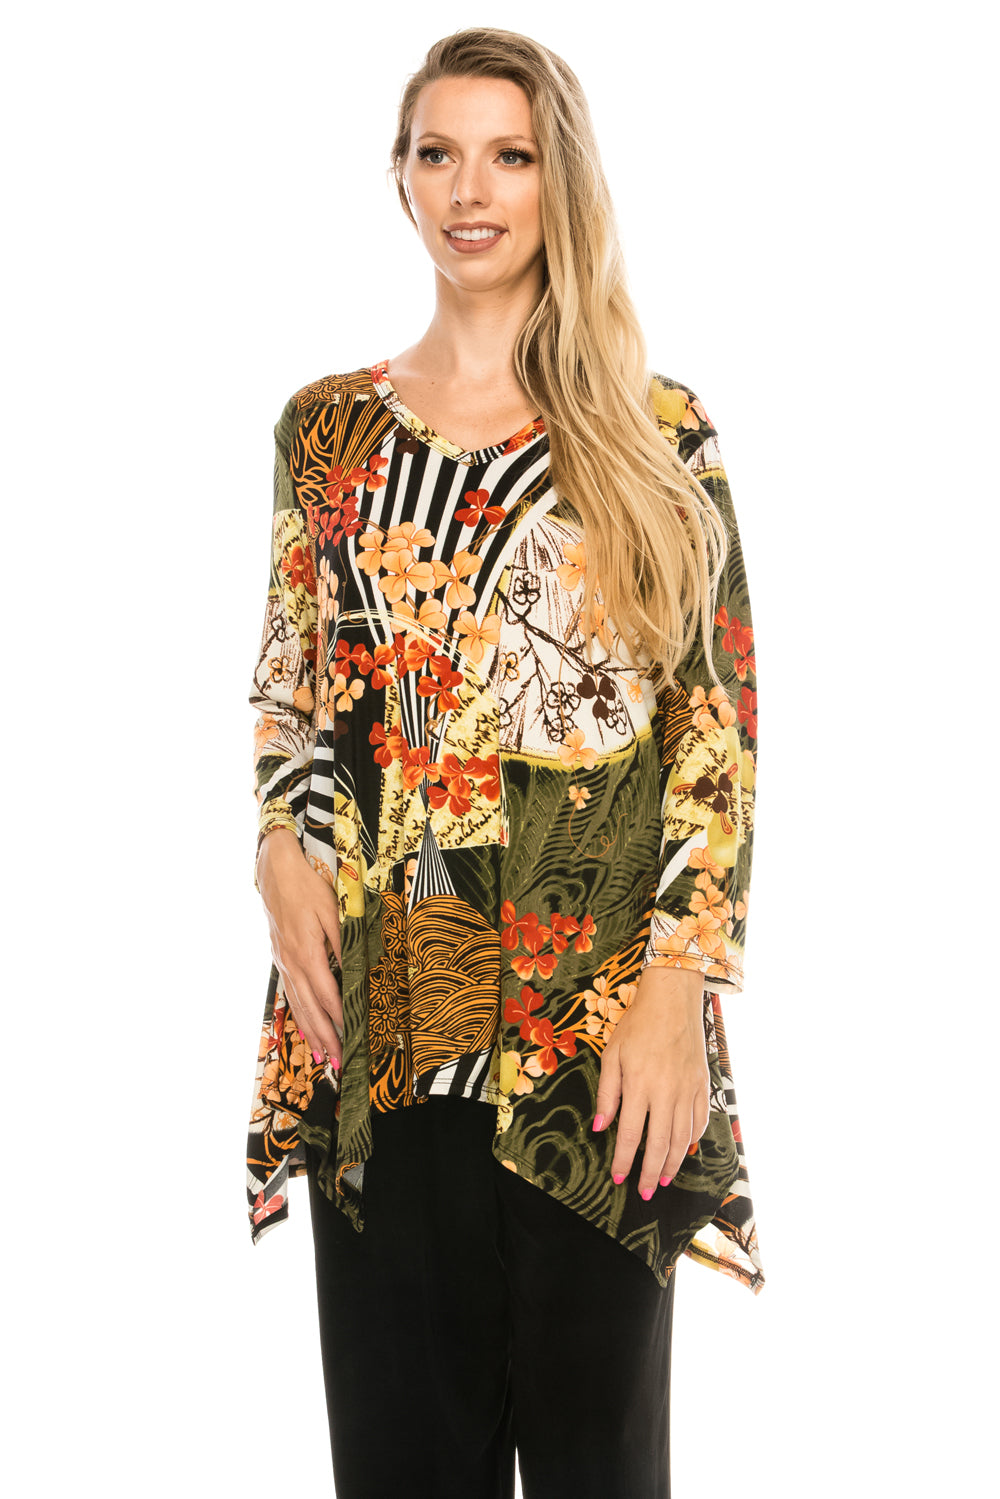 Jostar Women's Stretchy V-Neck Binding Top 3/4 Sleeve Print, 313BN-QP-W168 - Jostar Online